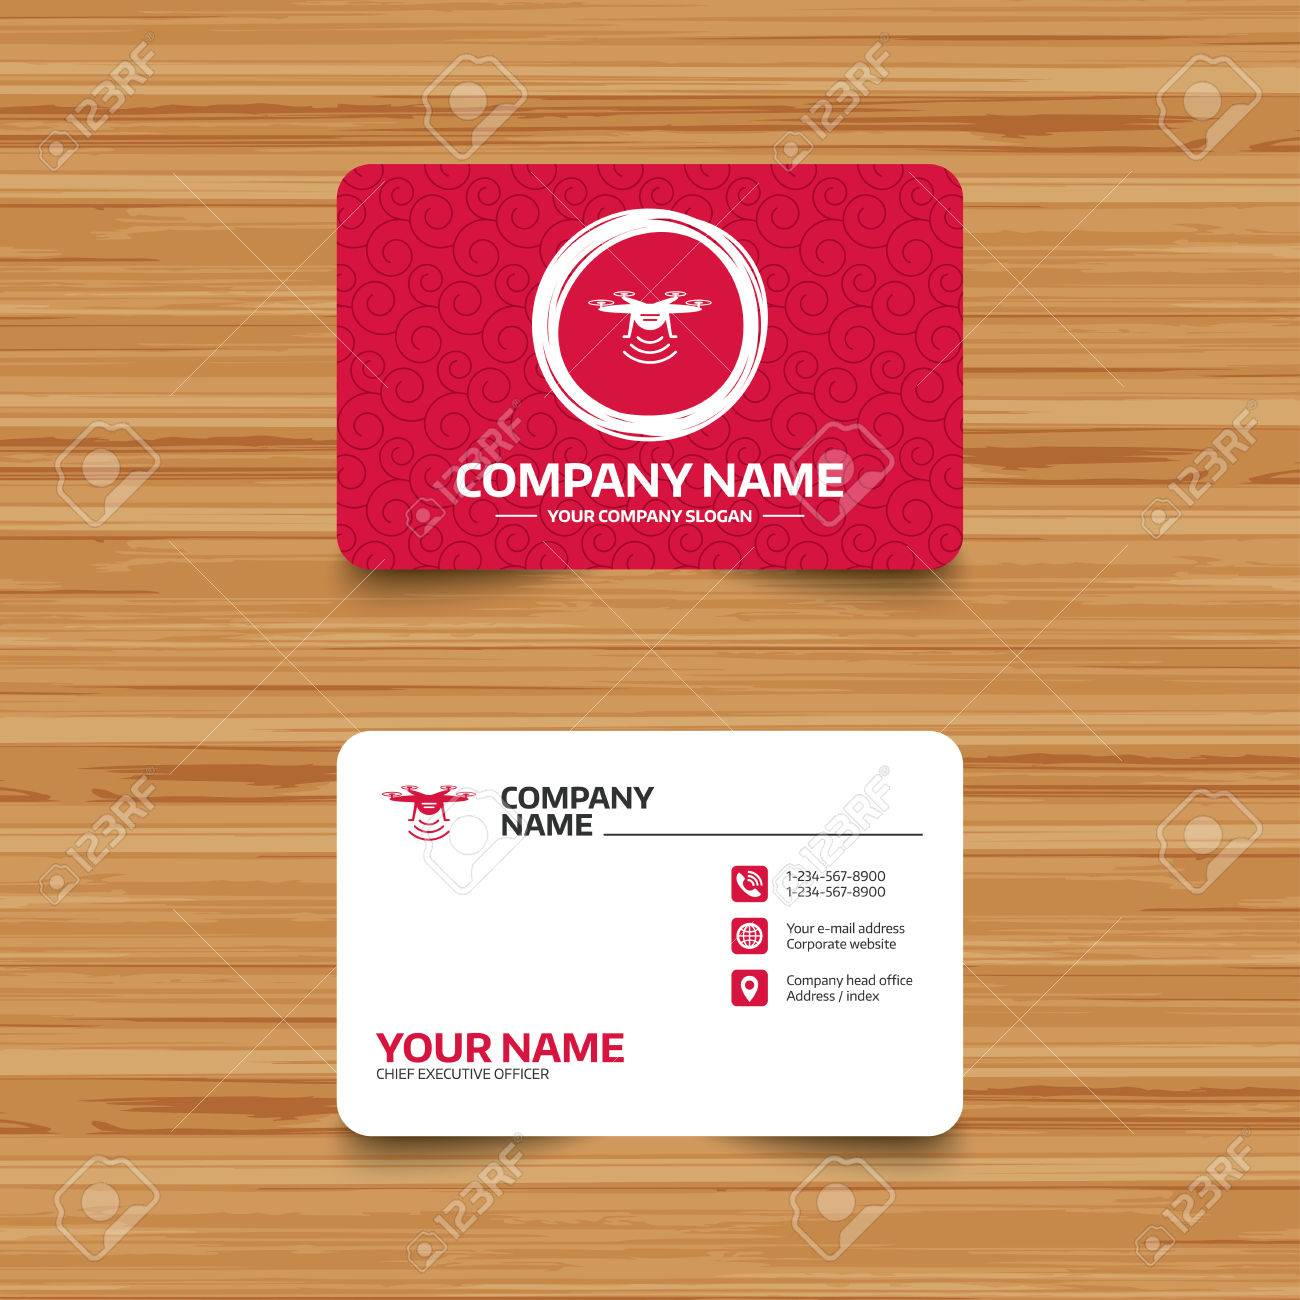 Business card template with texture drone icon quadrocopter business card template with texture drone icon quadrocopter with remote control symbol phone colourmoves